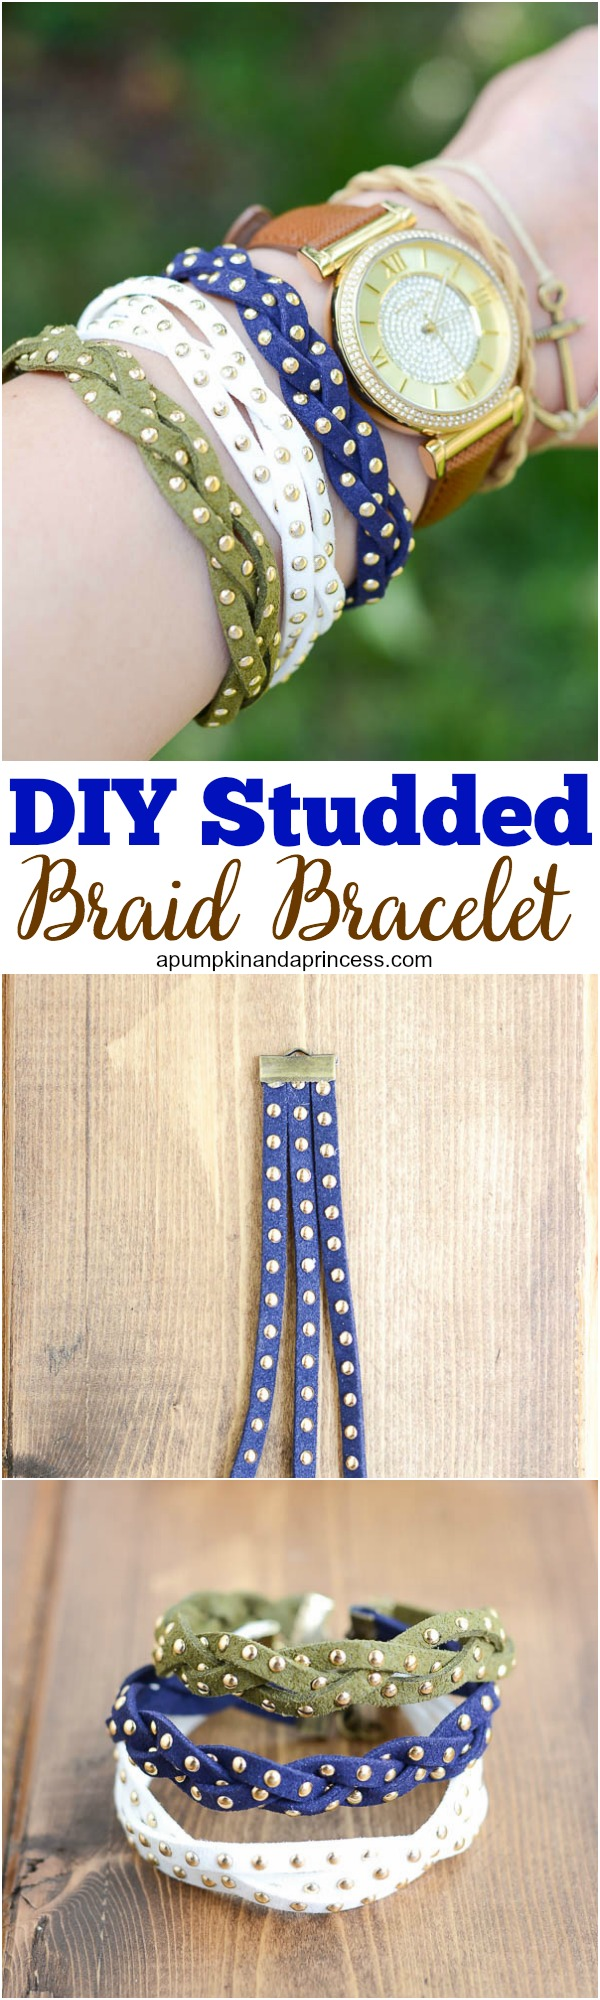 DIY Studded Braid Bracelet